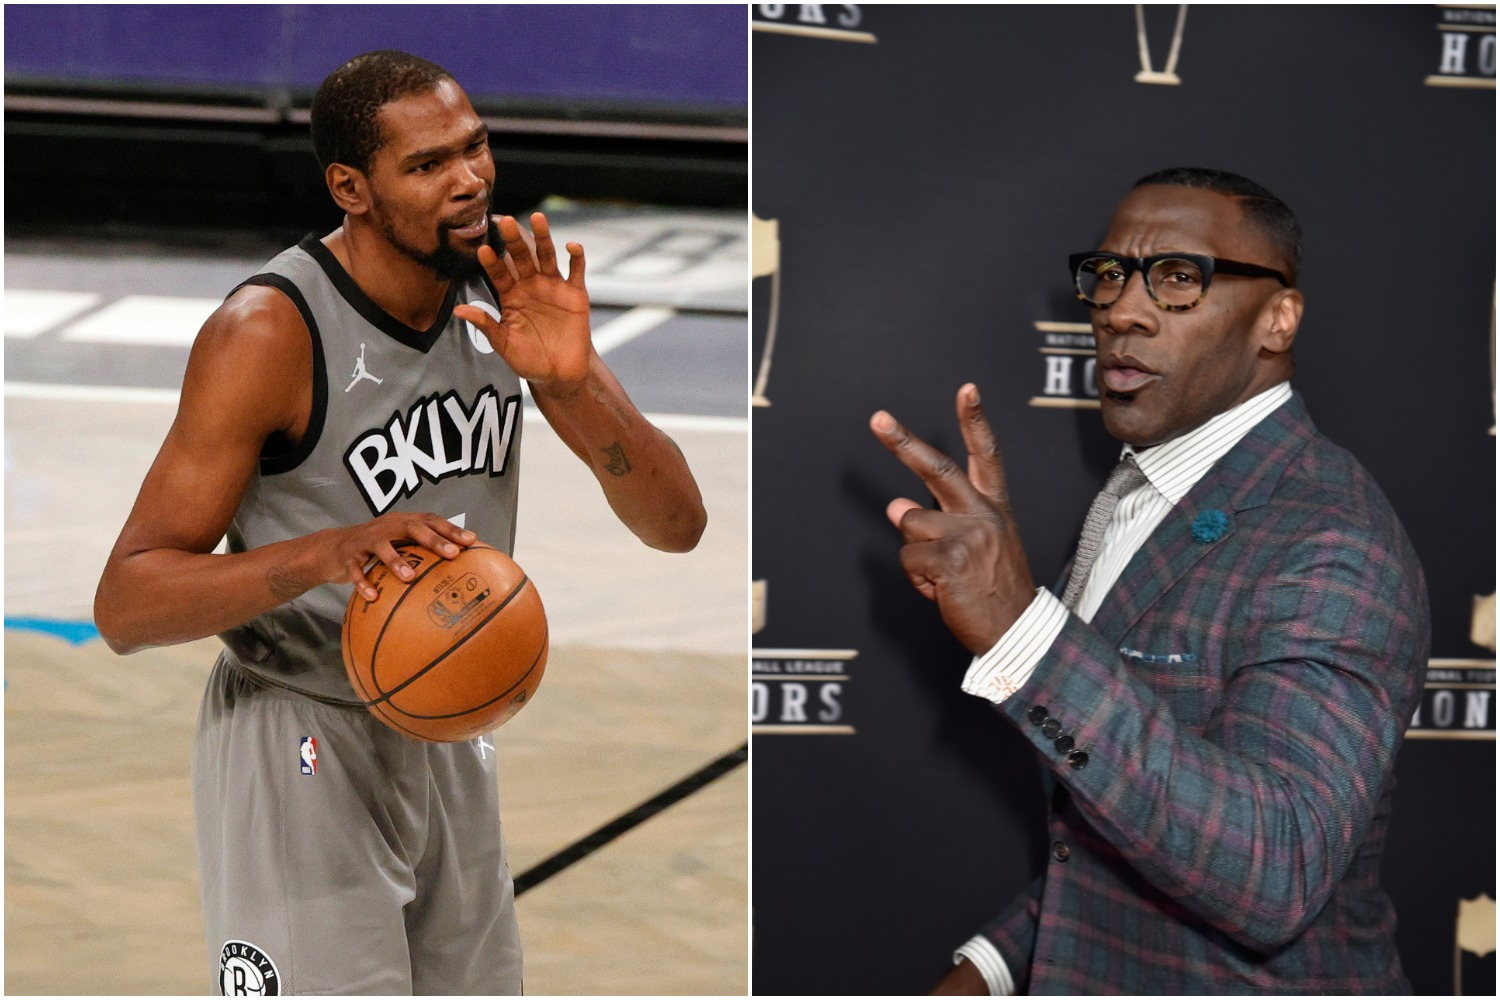 """Kevin Durant Blasts NFL Legend Shannon Sharpe for Spreading Fake News About Him on Live TV: """"Y'all Drunk Uncle Out Here Lying Again'"""